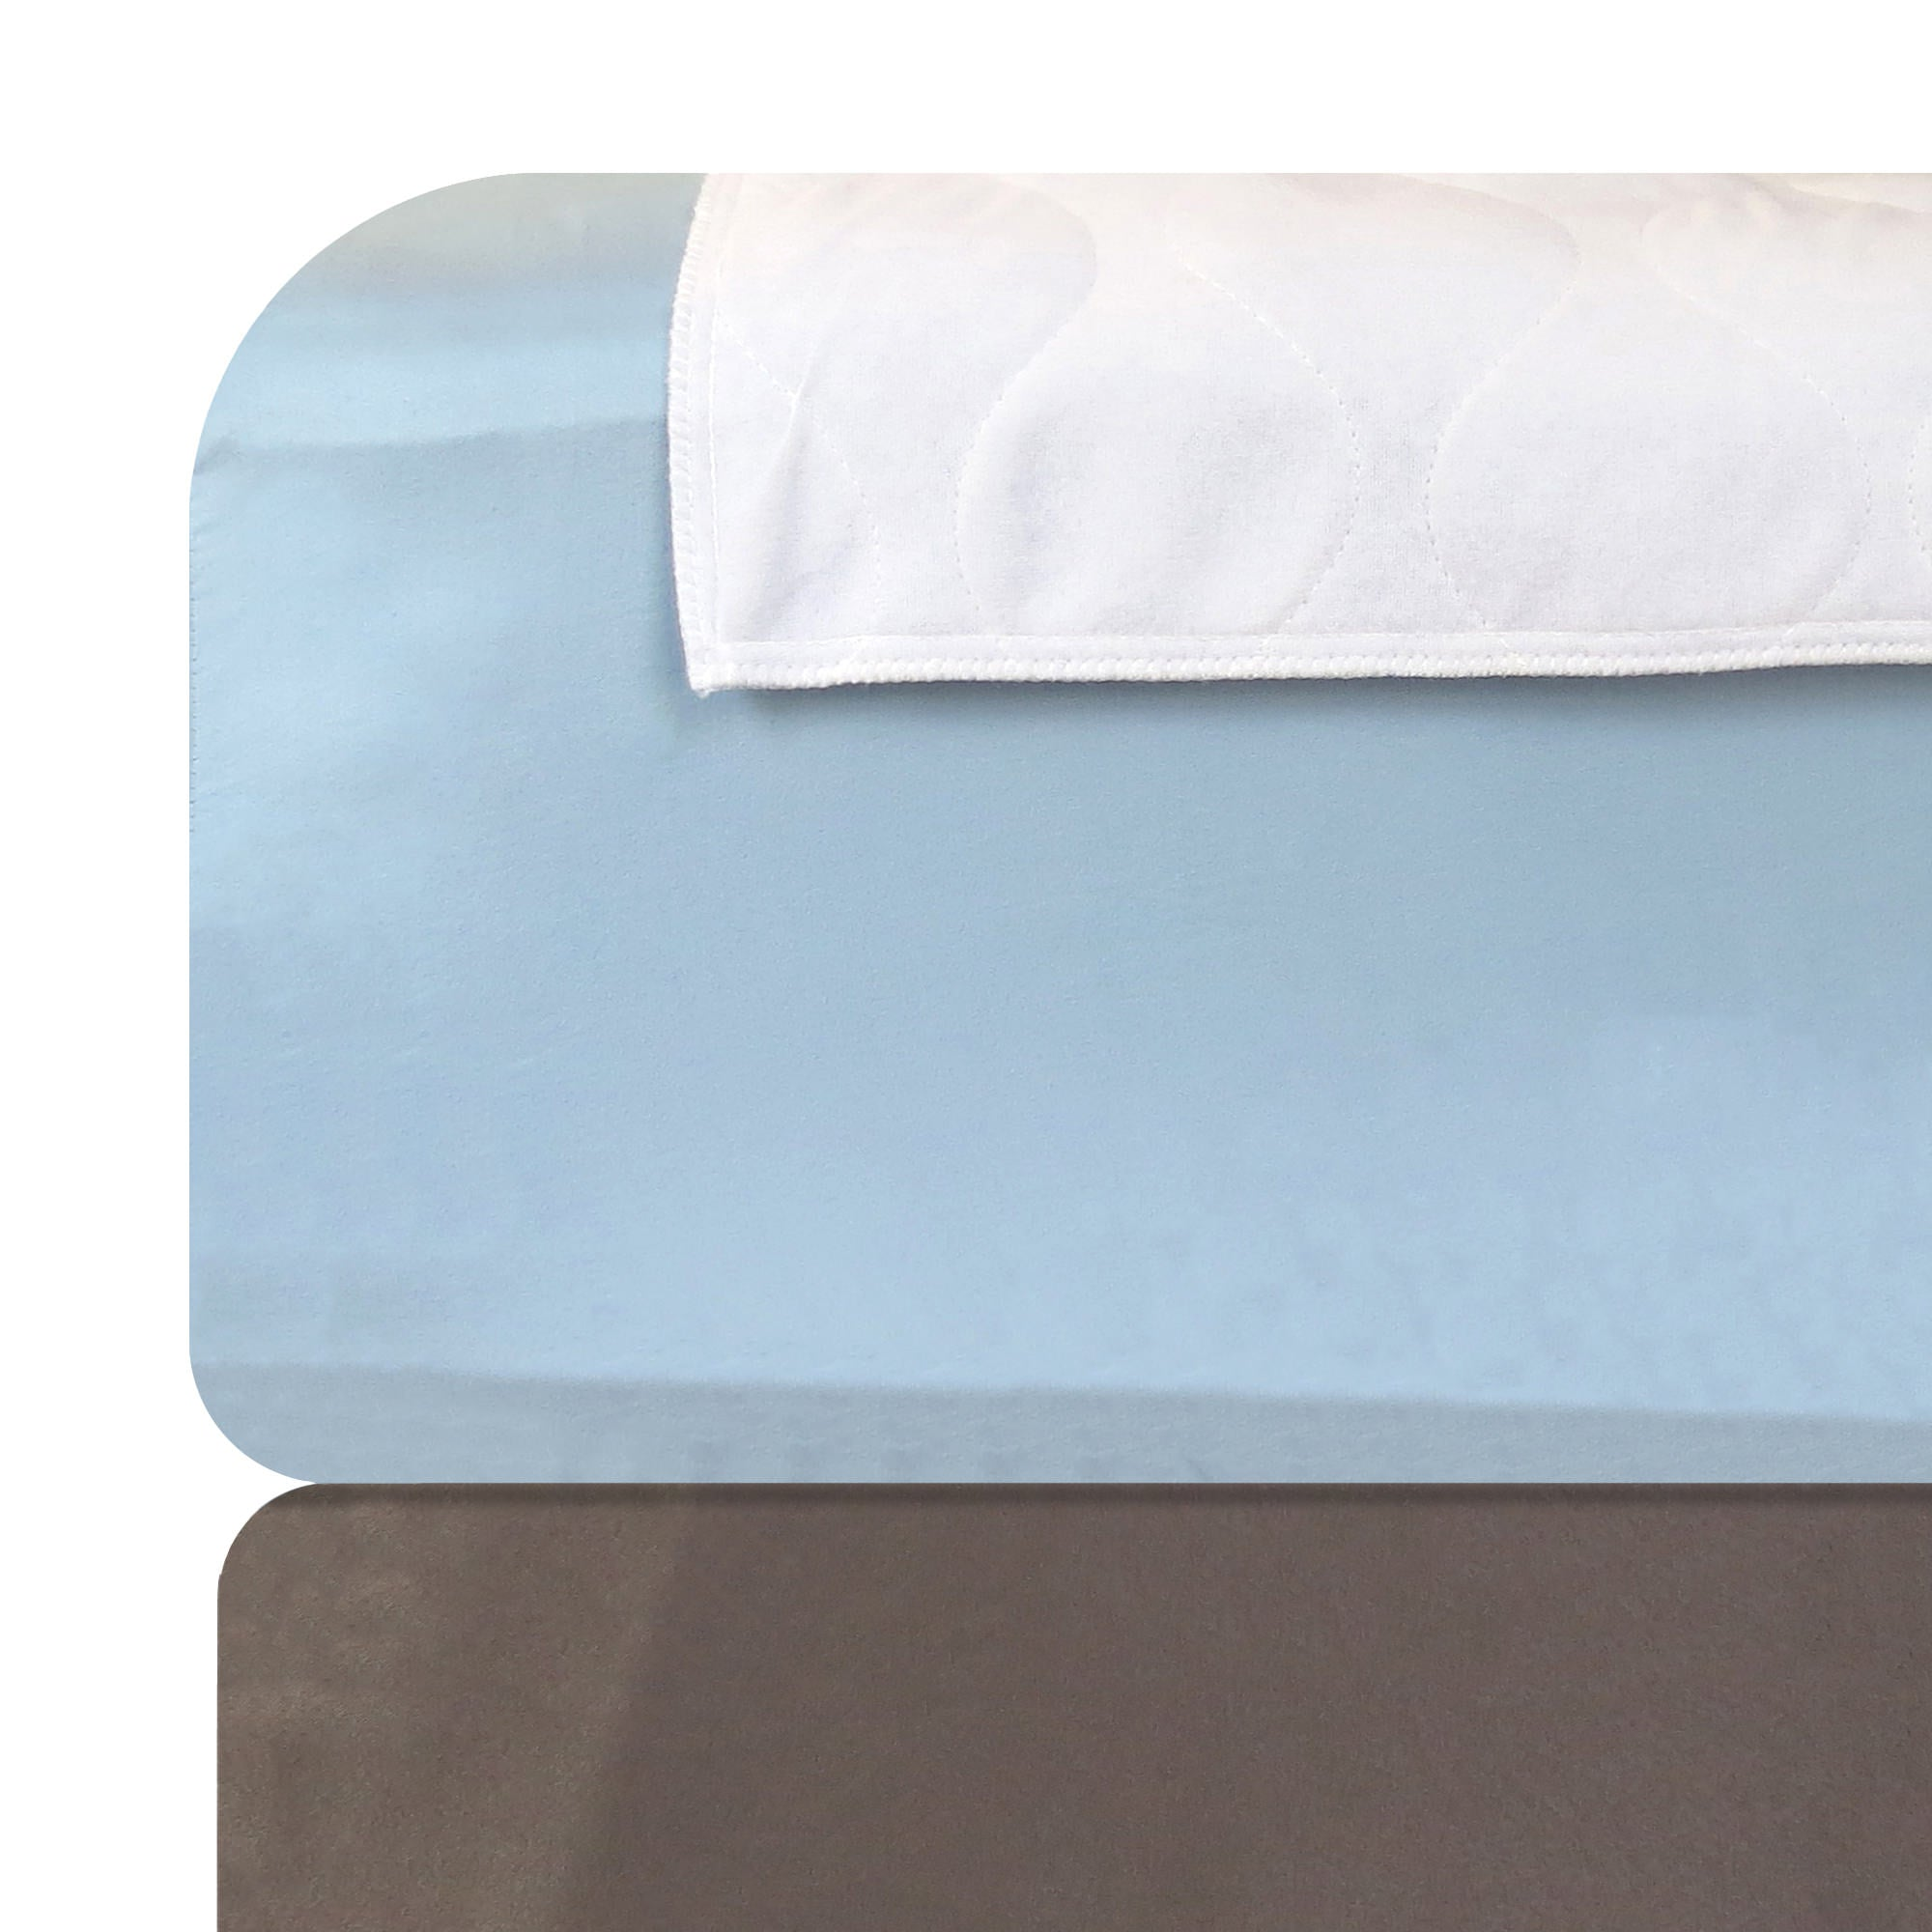 Bedding-Standard Reusable Underpads